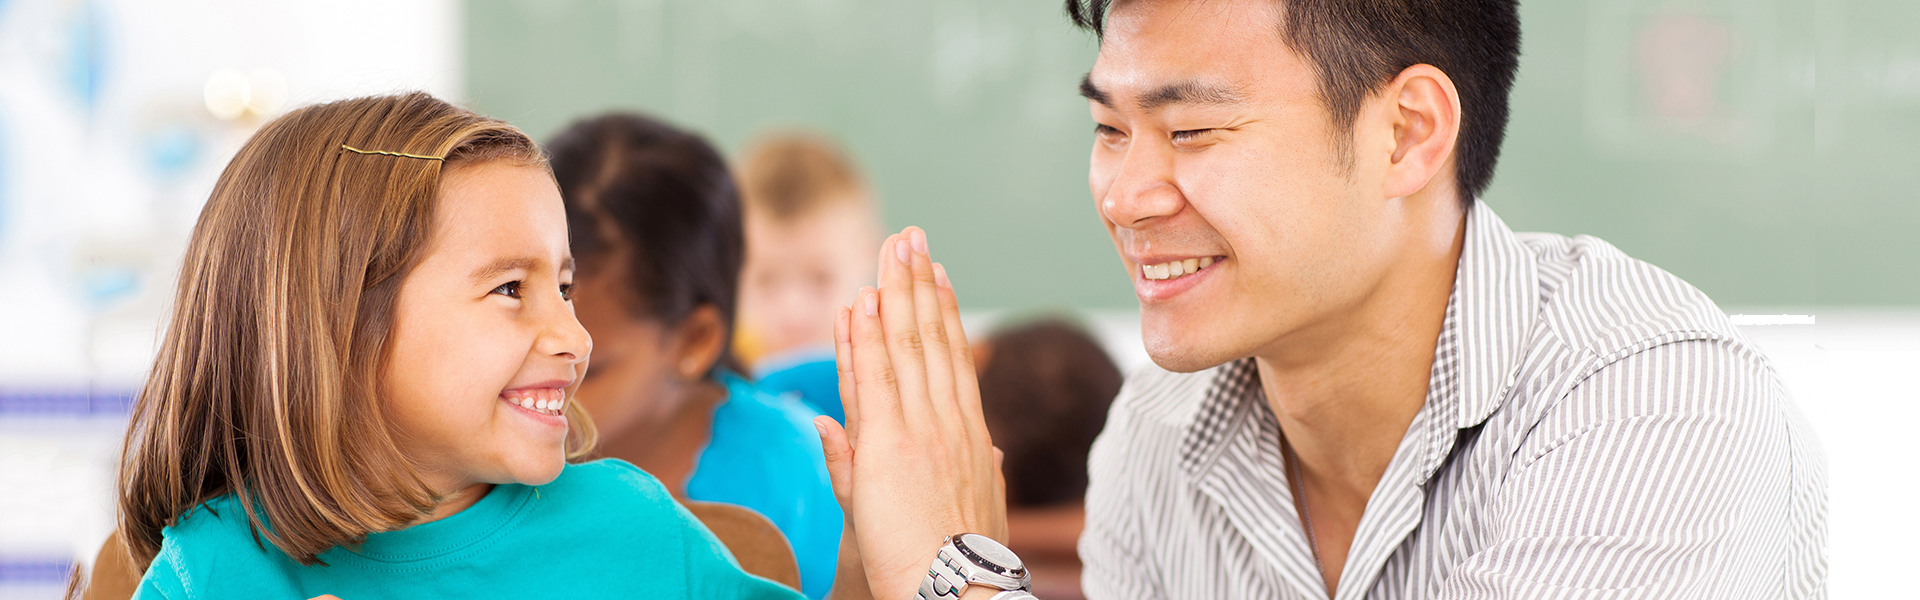 paraeducator and student high five